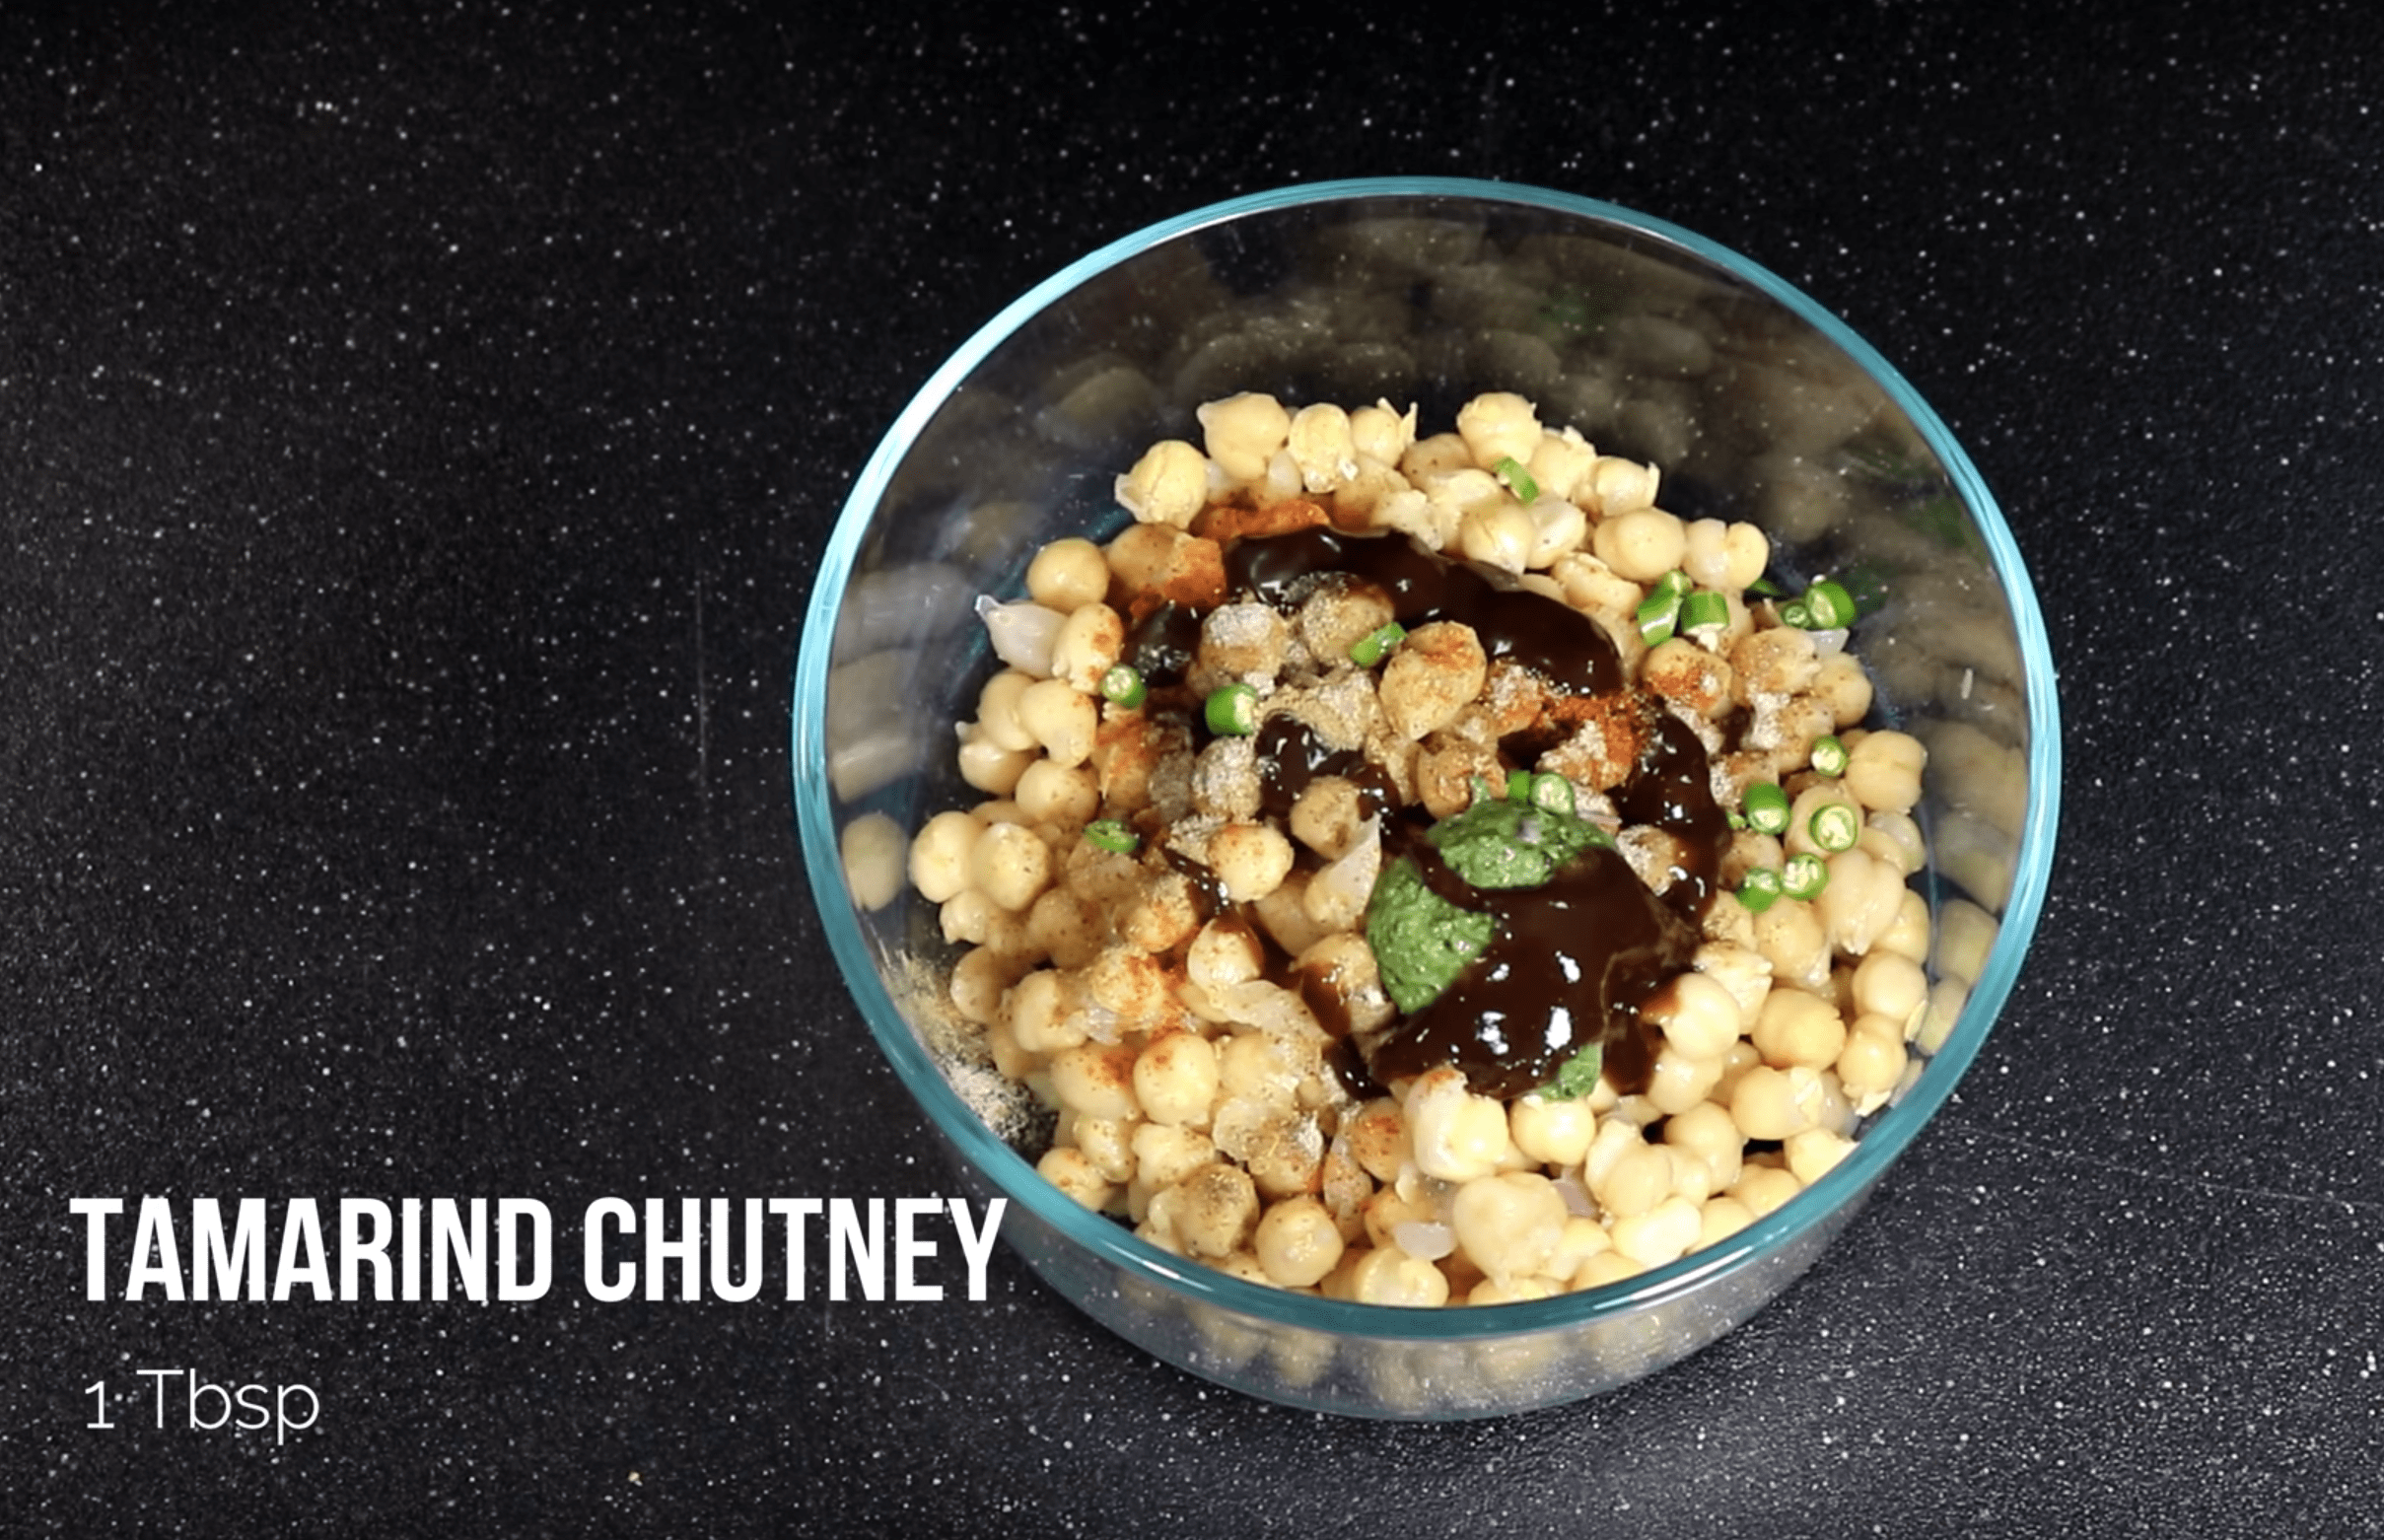 Add 1 TBSP Tamarind Chutney for Chana Chaat Chickpea Recipe